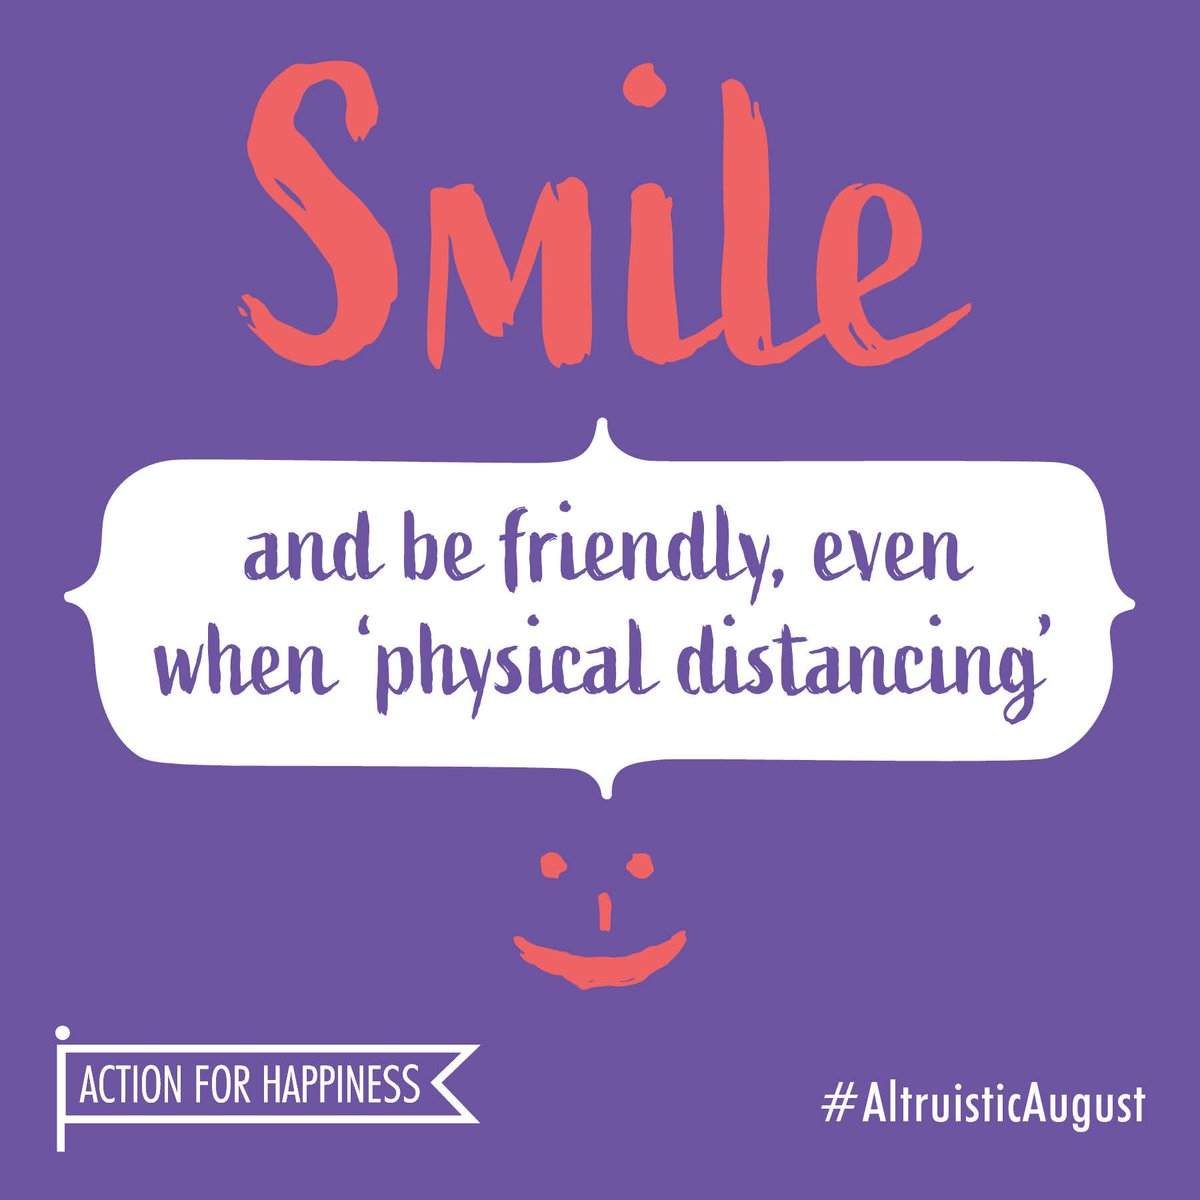 Altruistic August - Day 6: Smile and be friendly, even when 'physical distancing' 😀 actionforhappiness.org/altruistic-aug… #AltruisticAugust